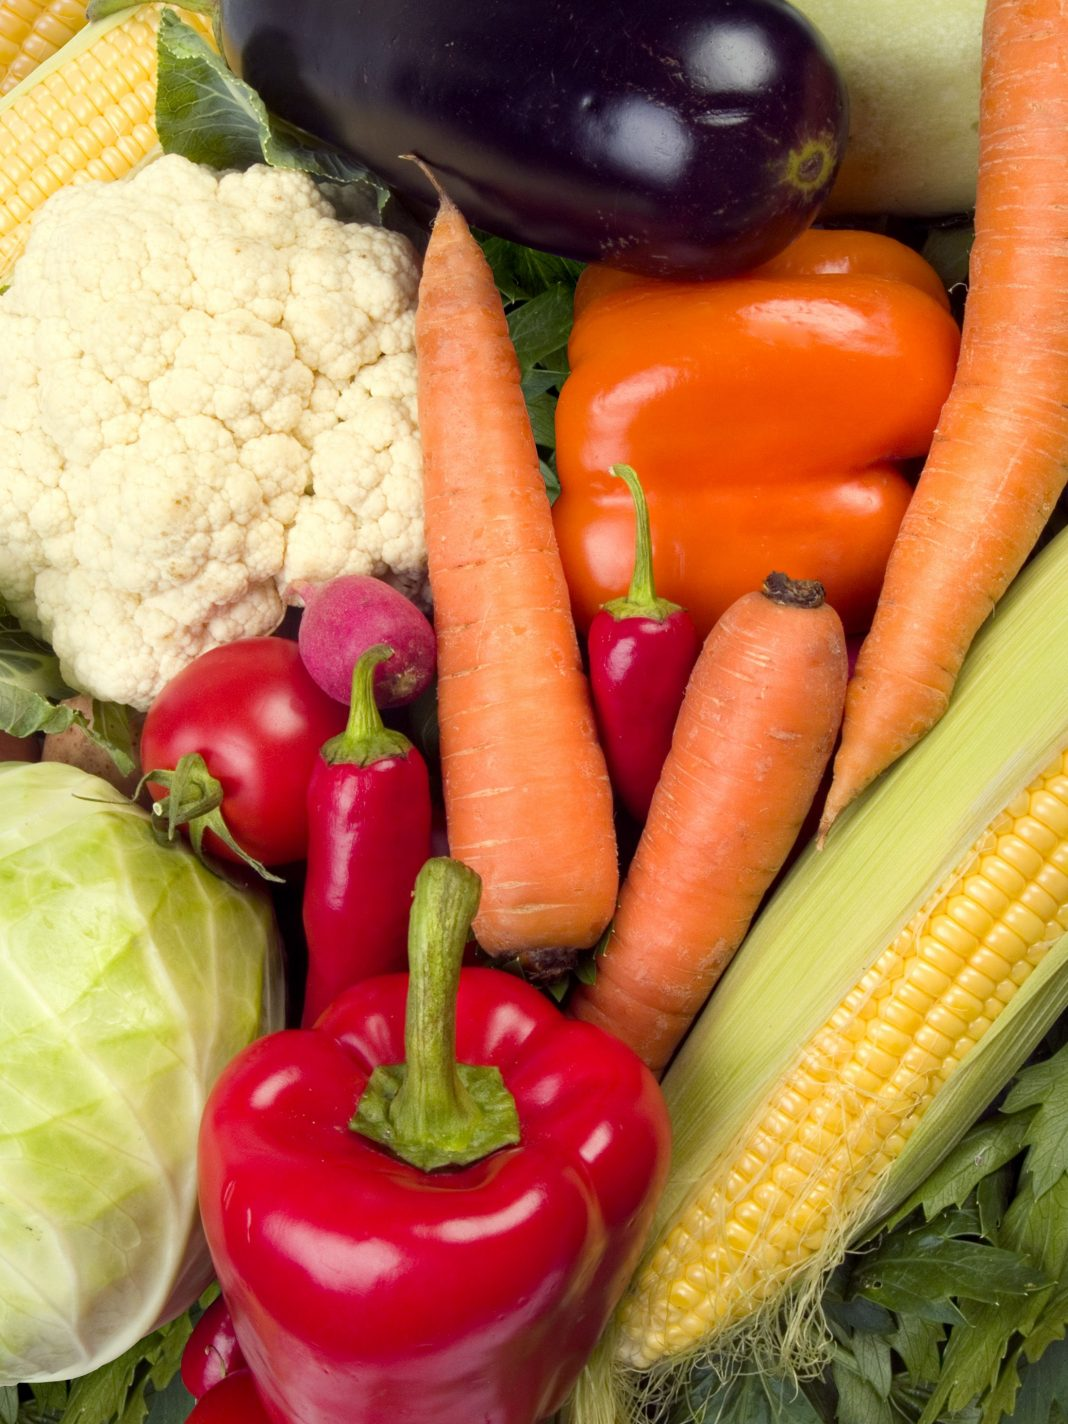 8 steps to selecting the most nutrient dense produce